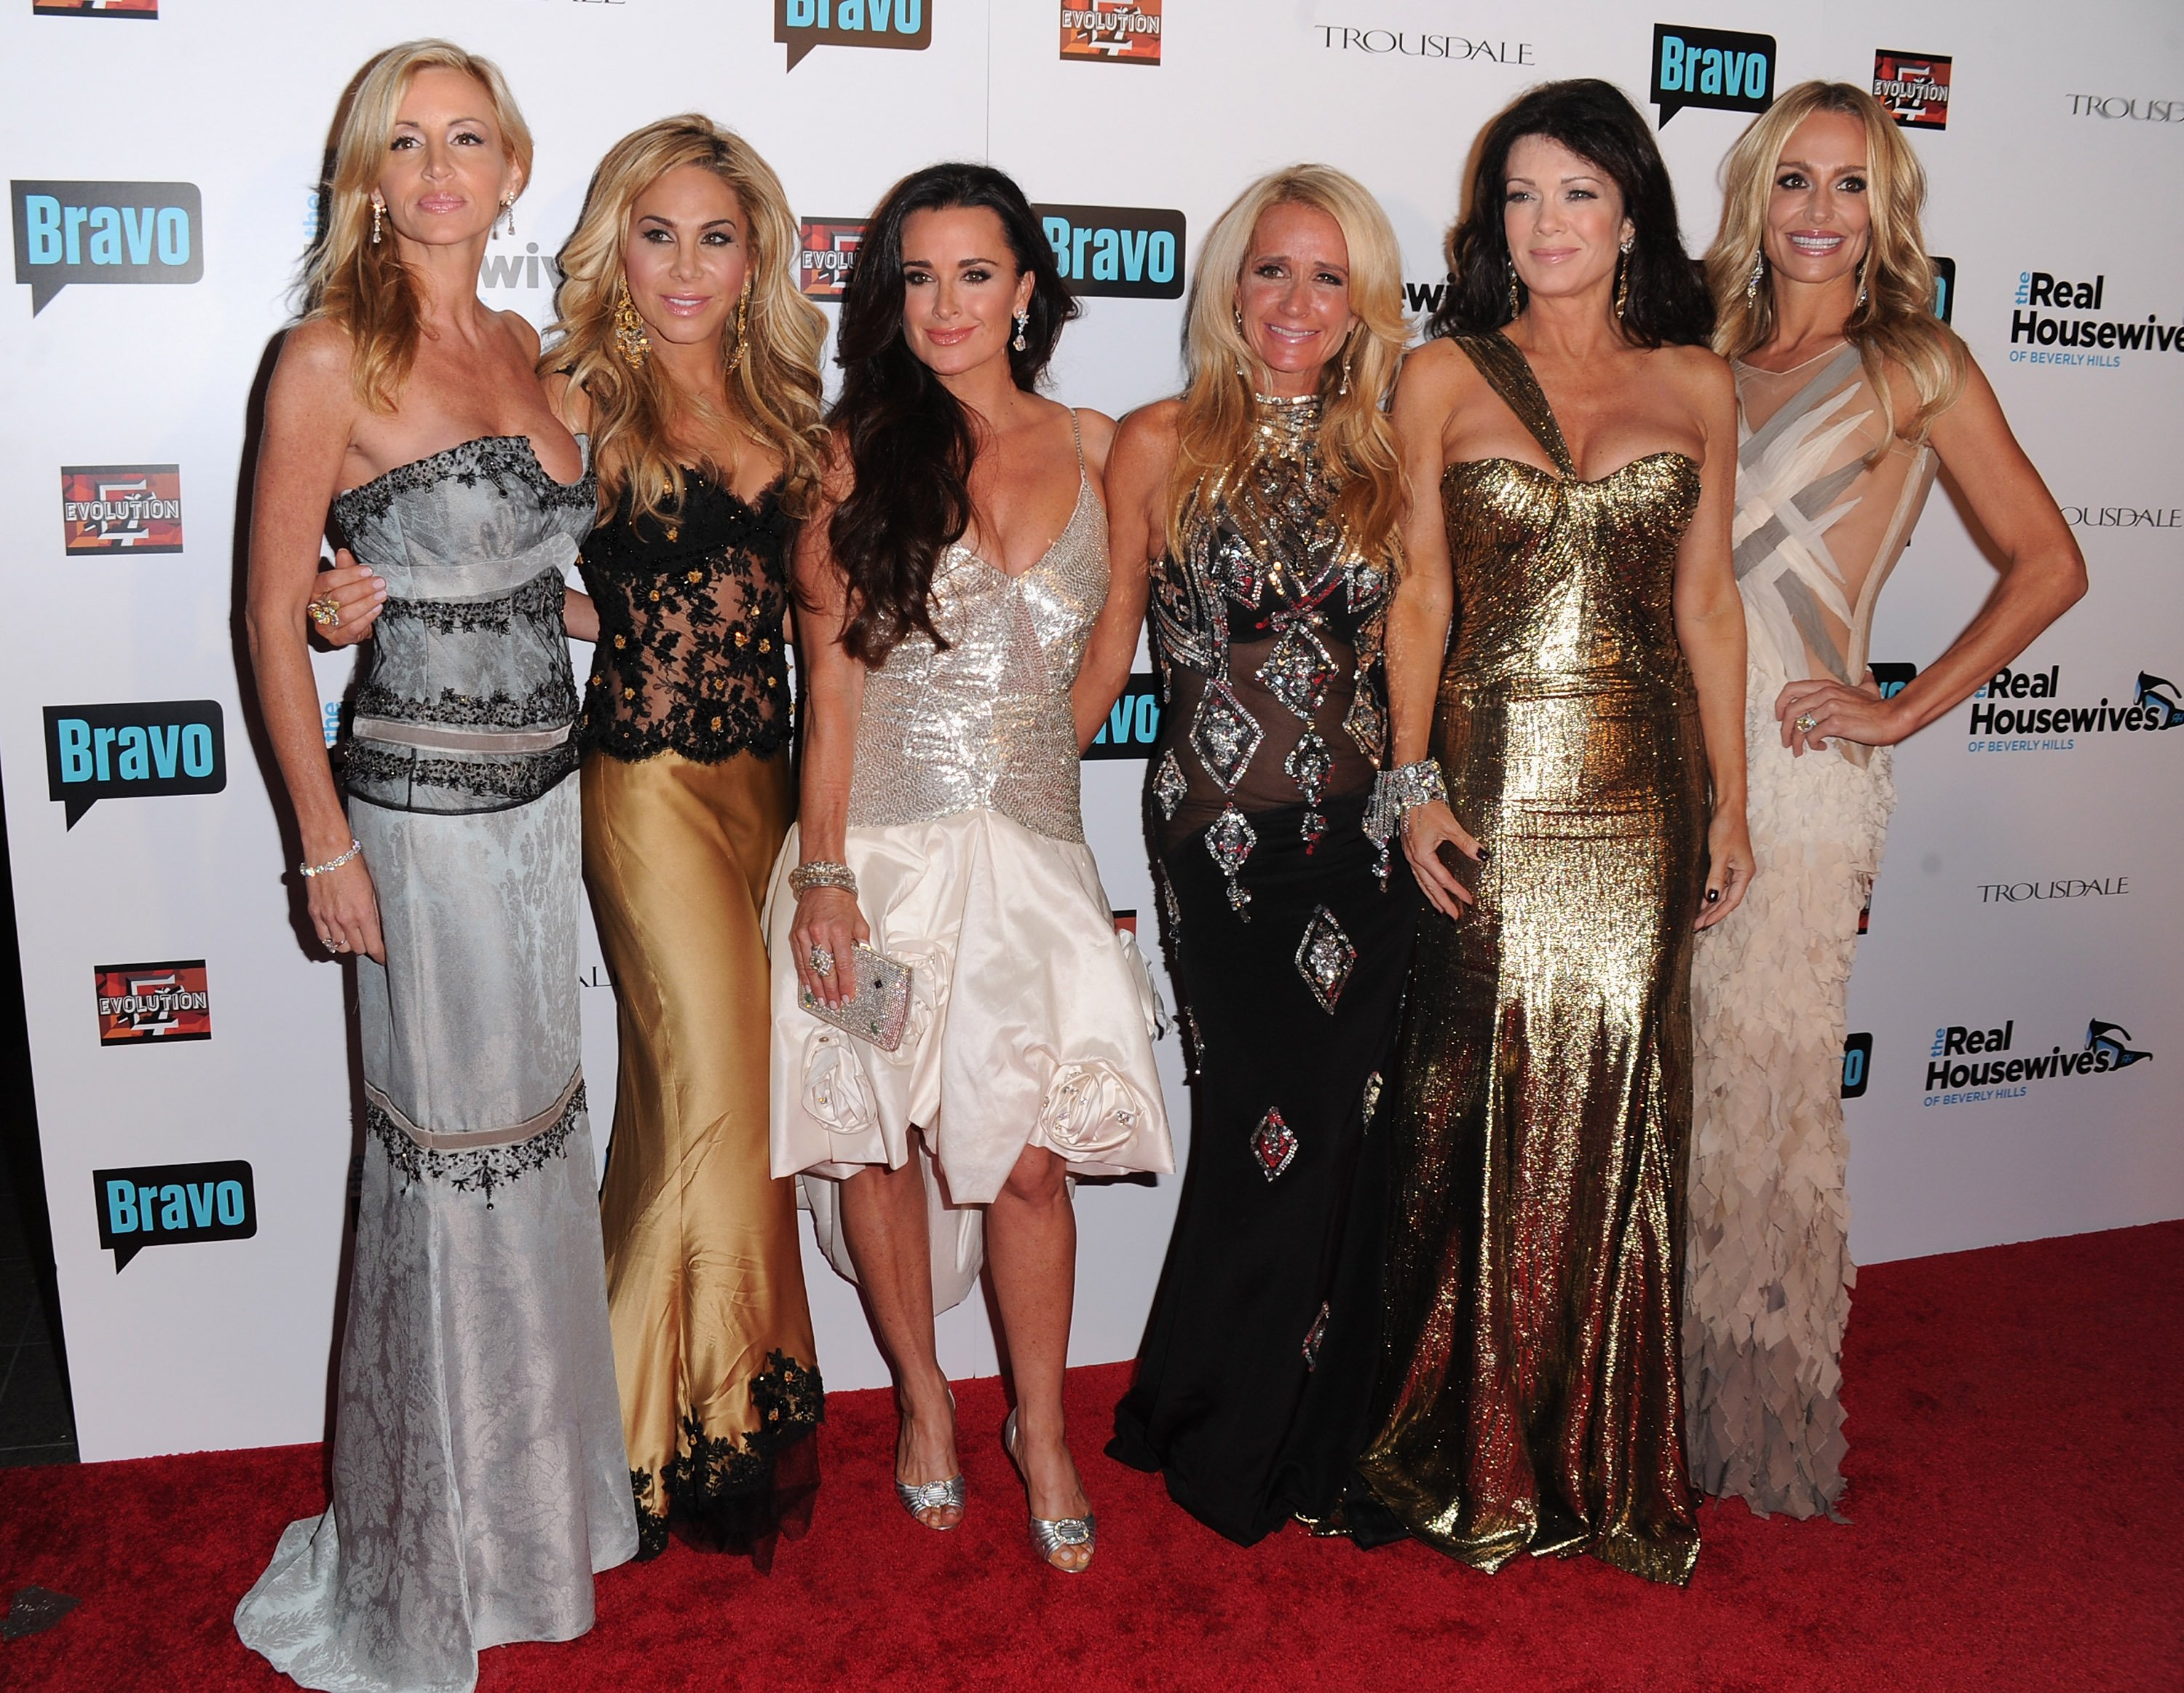 """Camille Grammer, Adrienne Maloof, Kyle Richards, Kim Richards, Lisa Vanderpump and Taylor Armstrong arrive at Bravo's """"The Real Housewives of Beverly Hills"""" series party on October 11, 2010. 